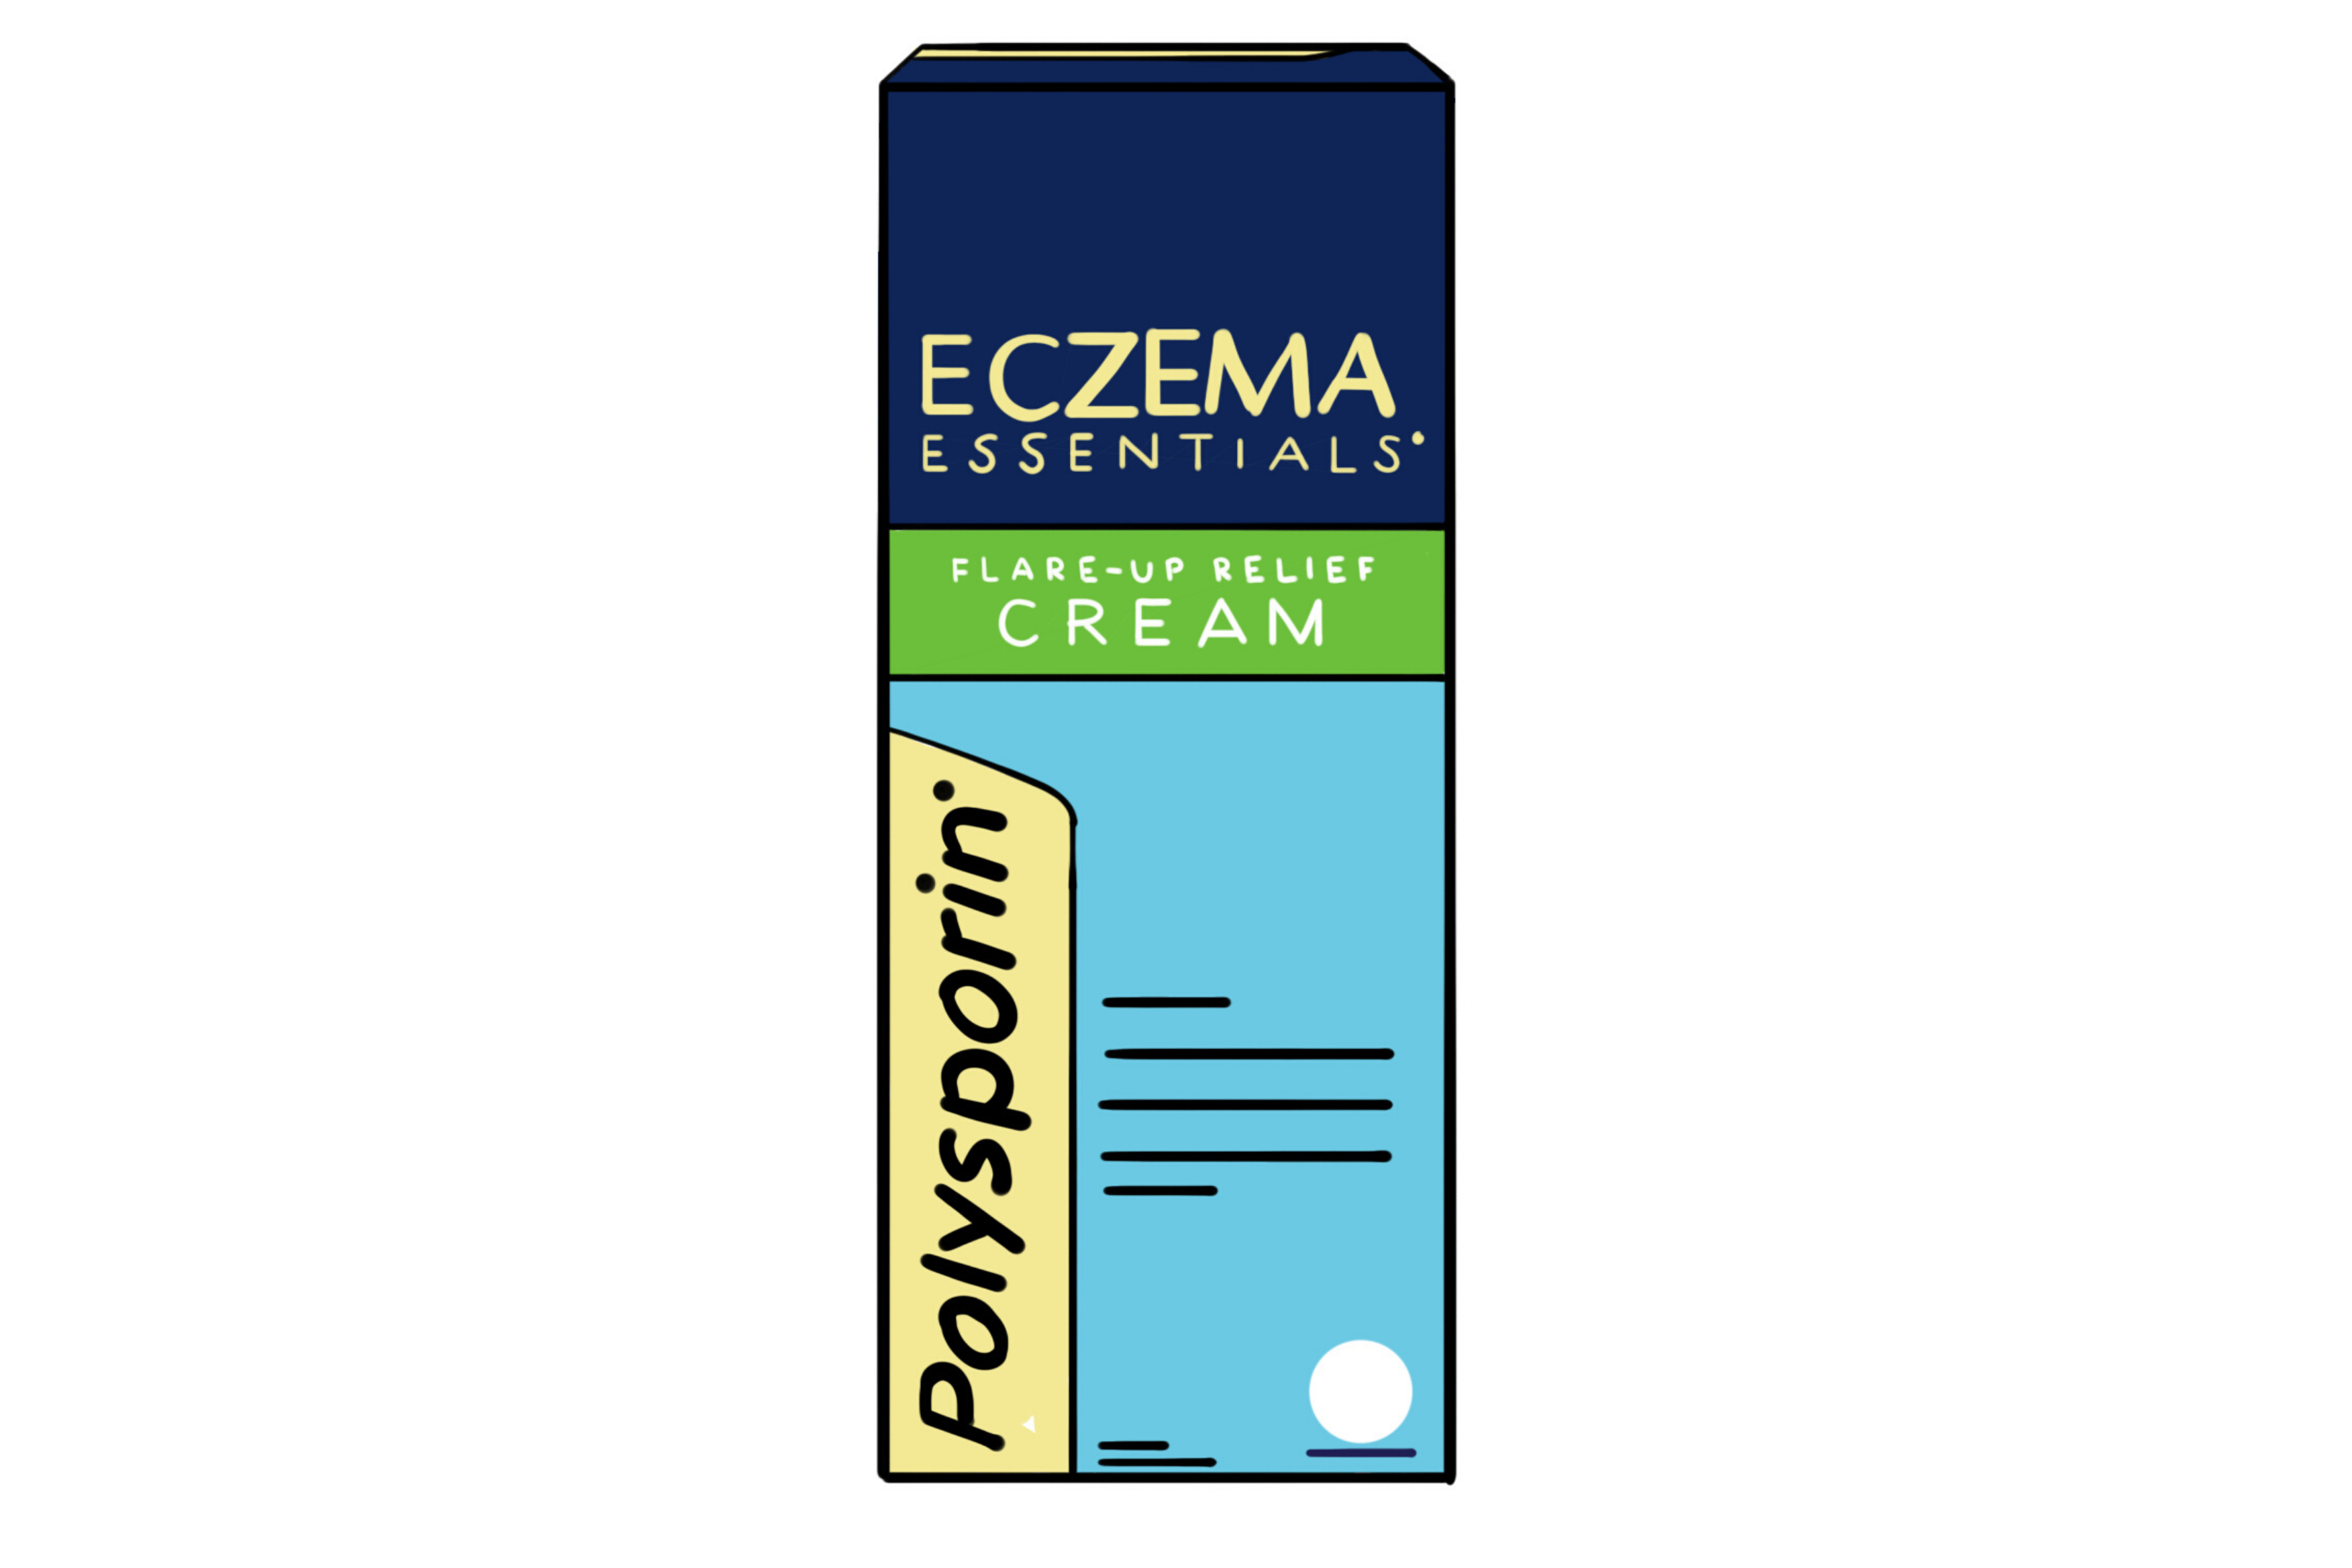 Polysporin Eczema Essentials Daily Moisturizing Cream: A Review on Colloidal Oatmeal for Eczema